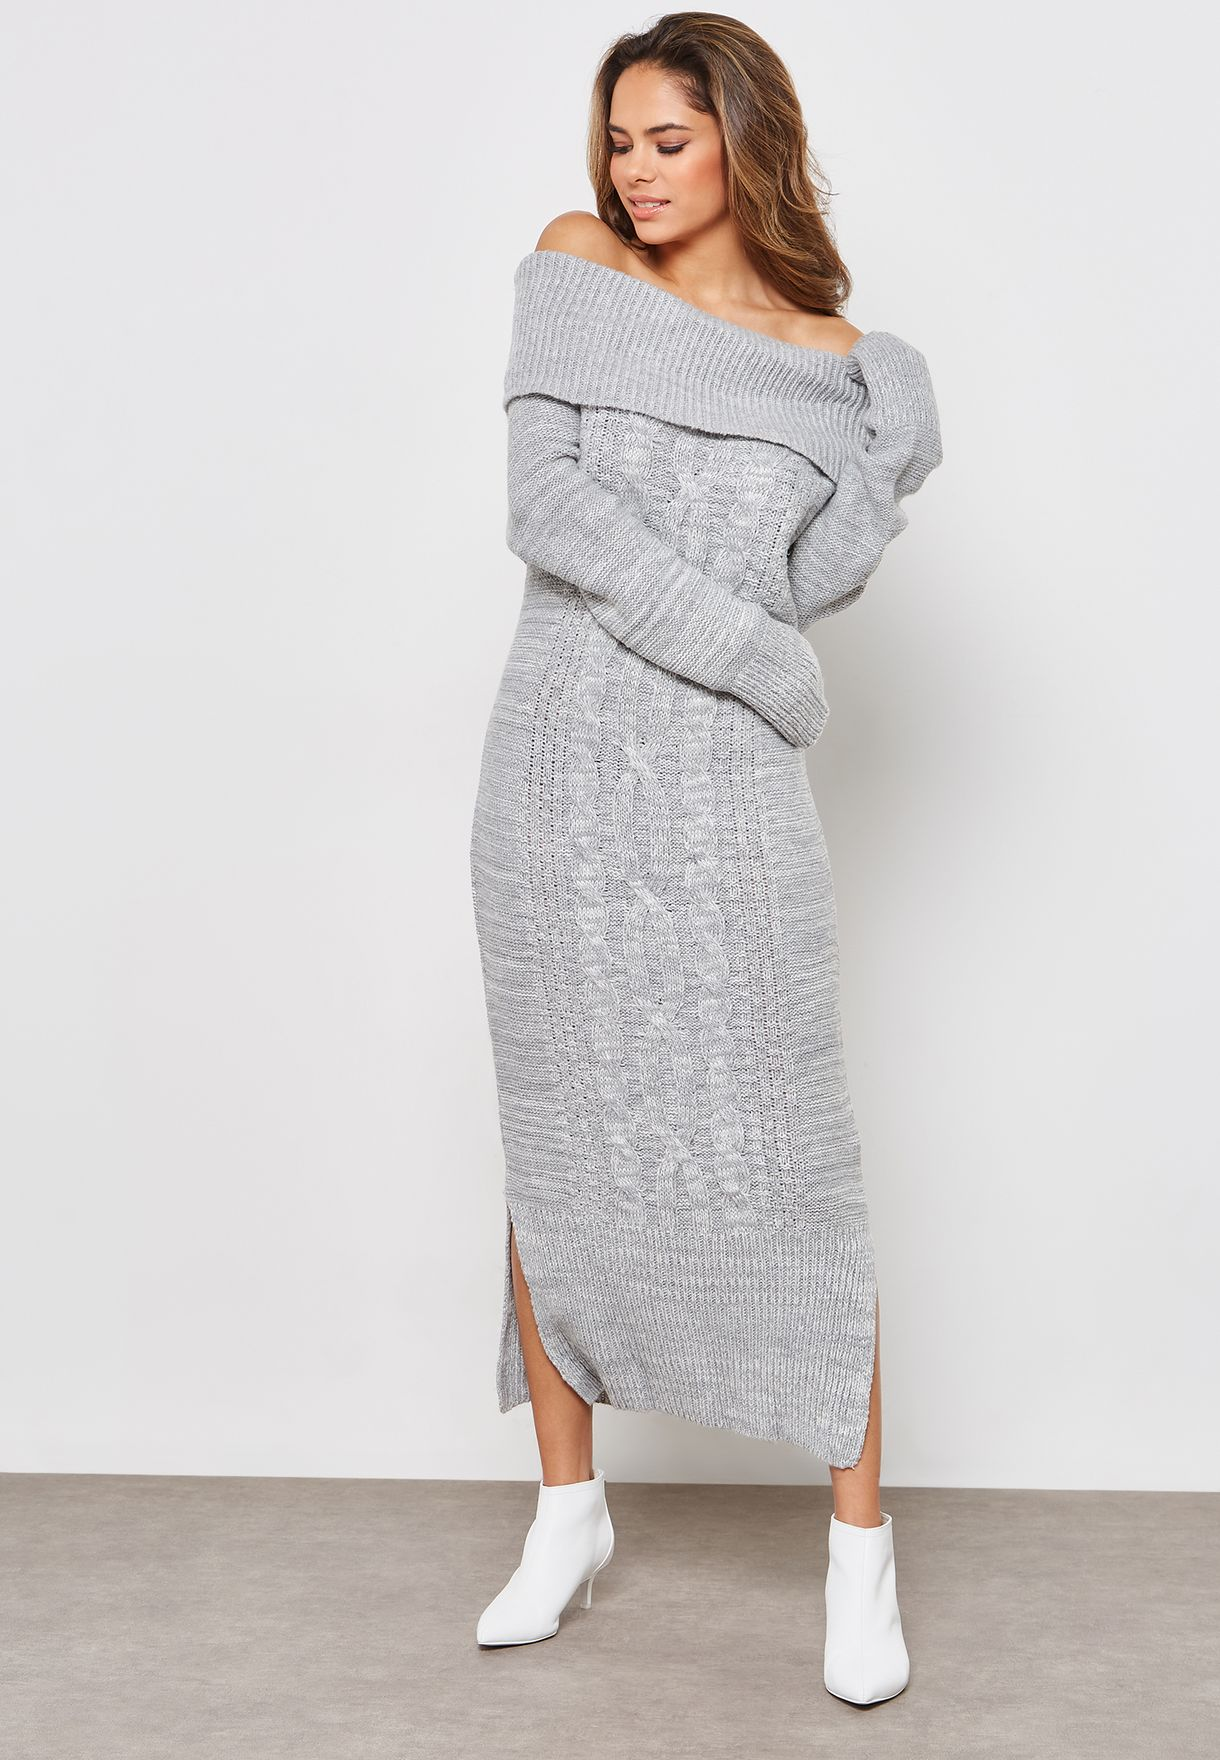 d5d7c0f7ebe Shop Lost Ink grey Long Sleeve Bardot Cable Knitted Midi Dress ...